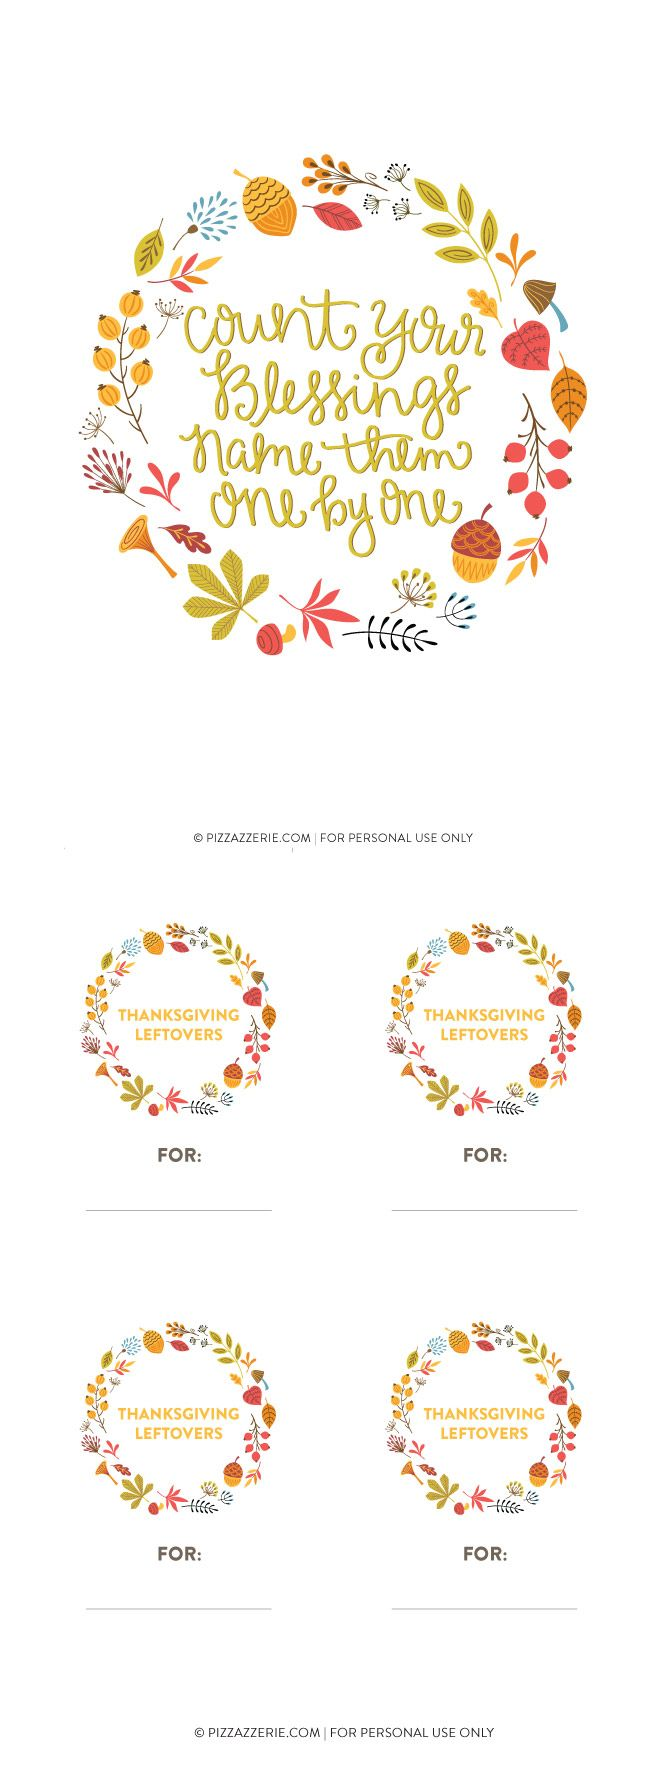 Free Thanksgiving Printable Collection, art prints, banners, leftover labels!